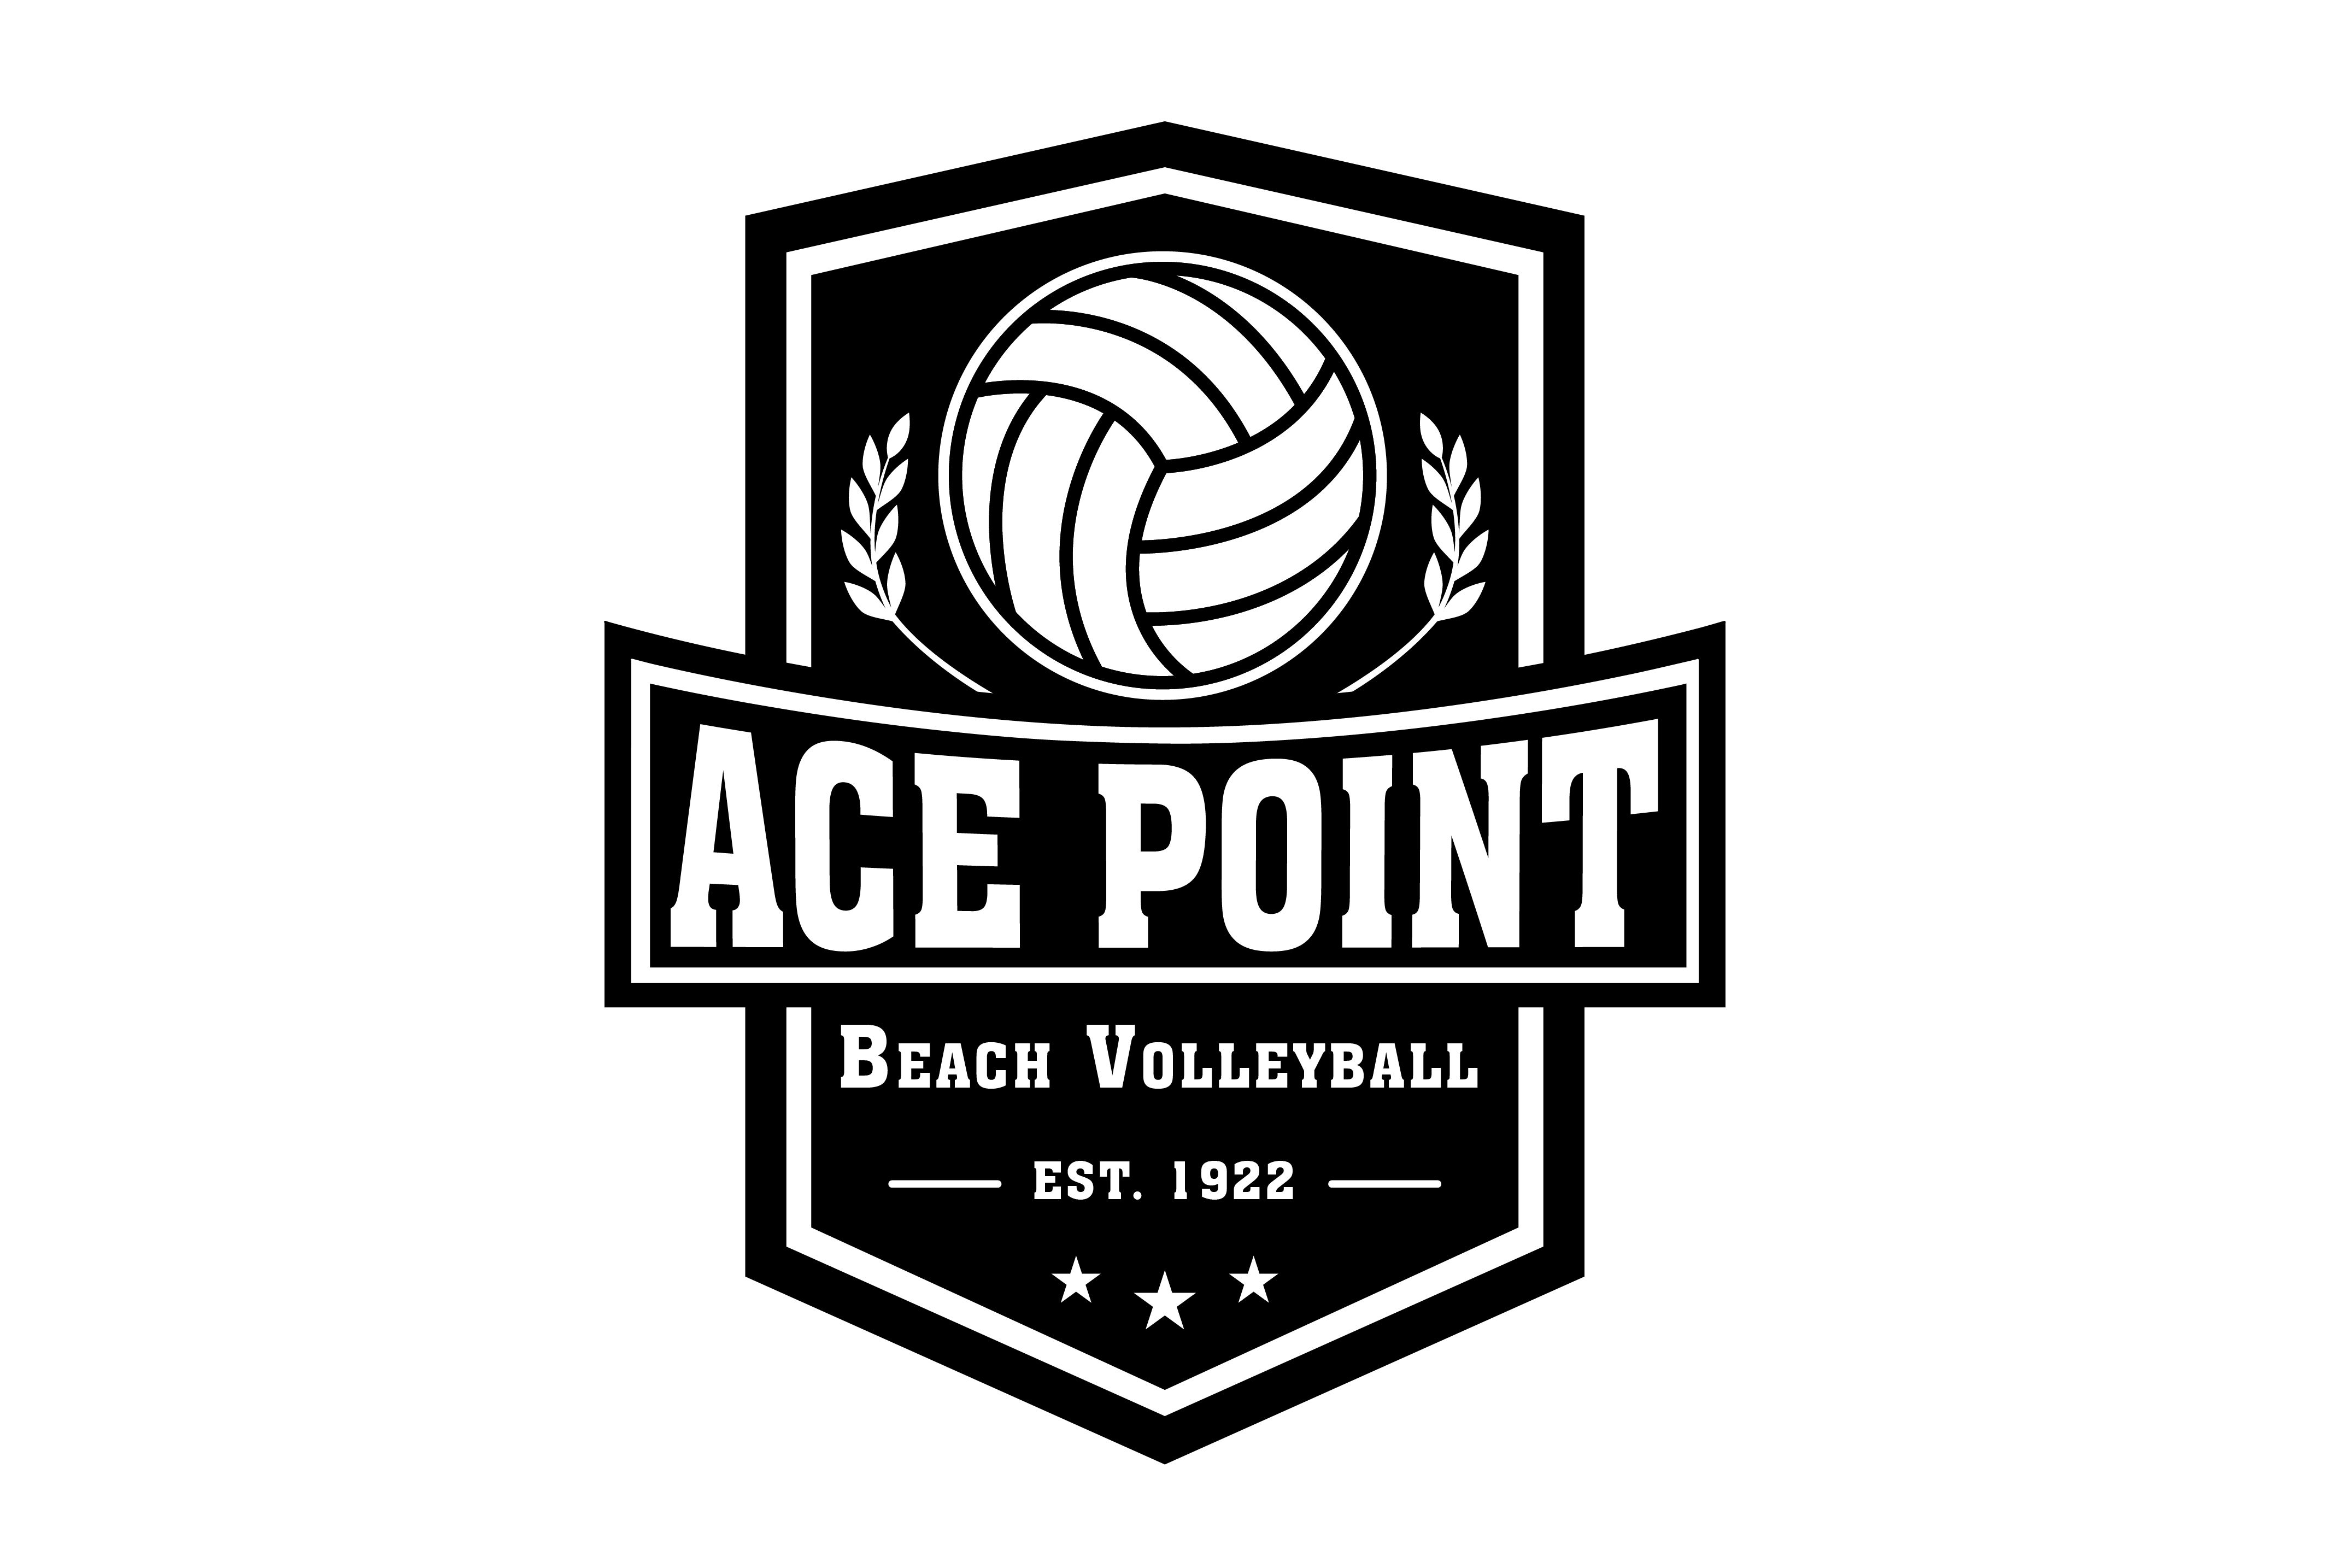 The Pinnacle Of Beach Volleyball Ace Point Beach Volleyball Brand Vintage Logo Desain